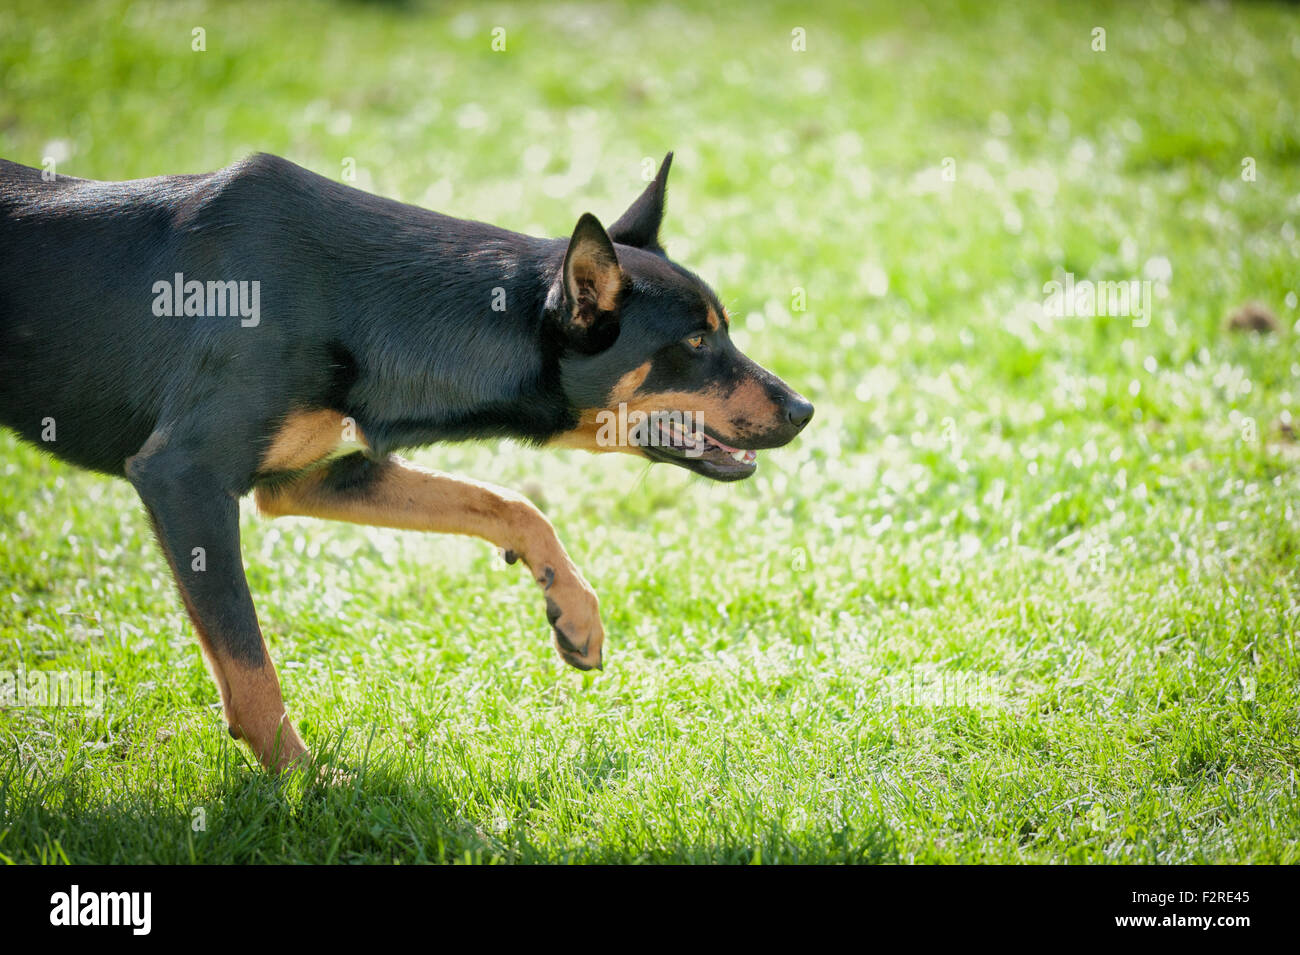 A kelpie sheep dog poised and alert - Stock Image